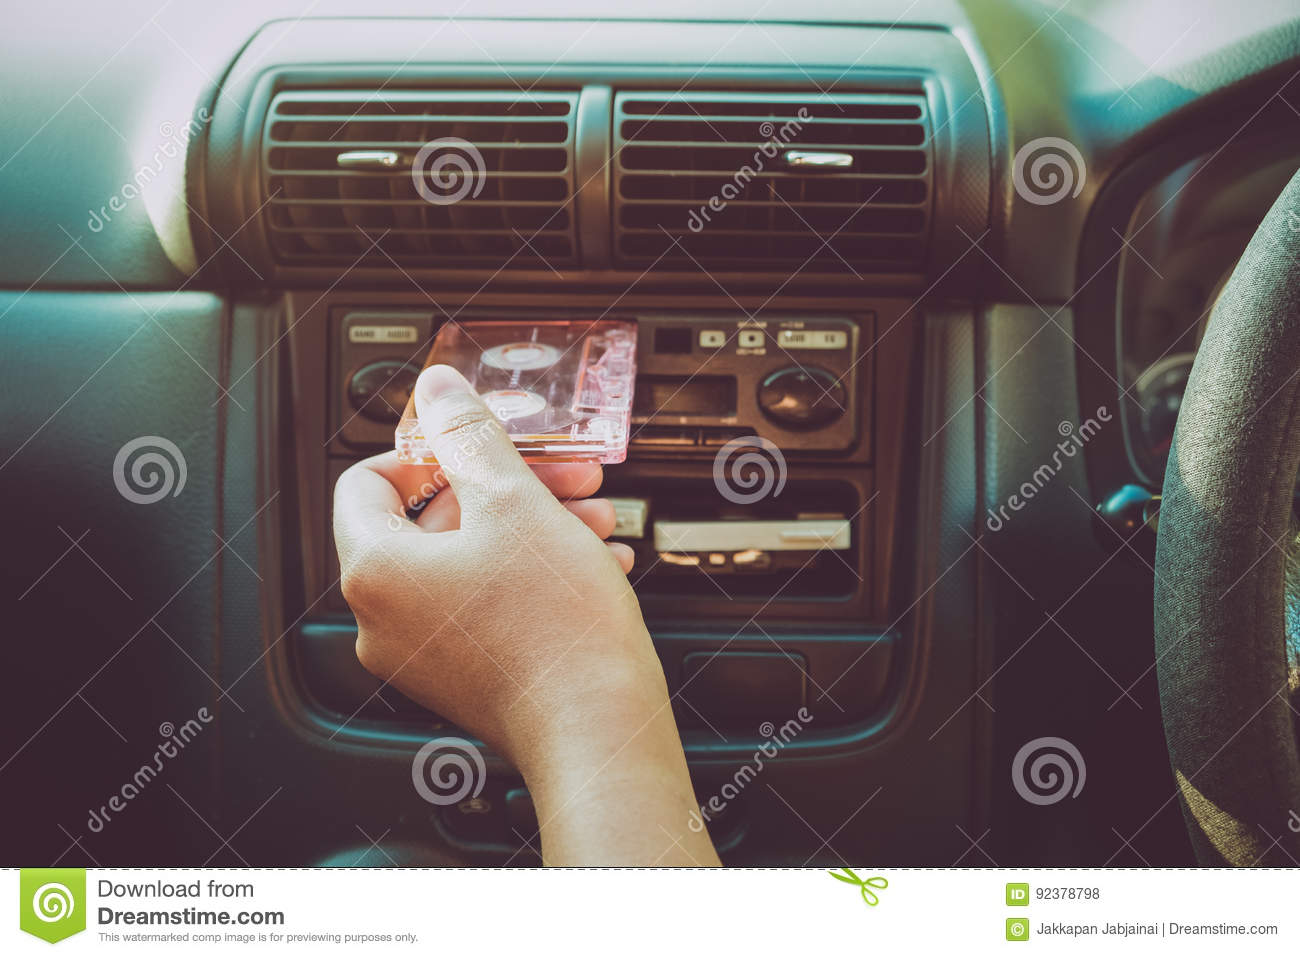 Woman hand holding tape cassette in car for driving listen music